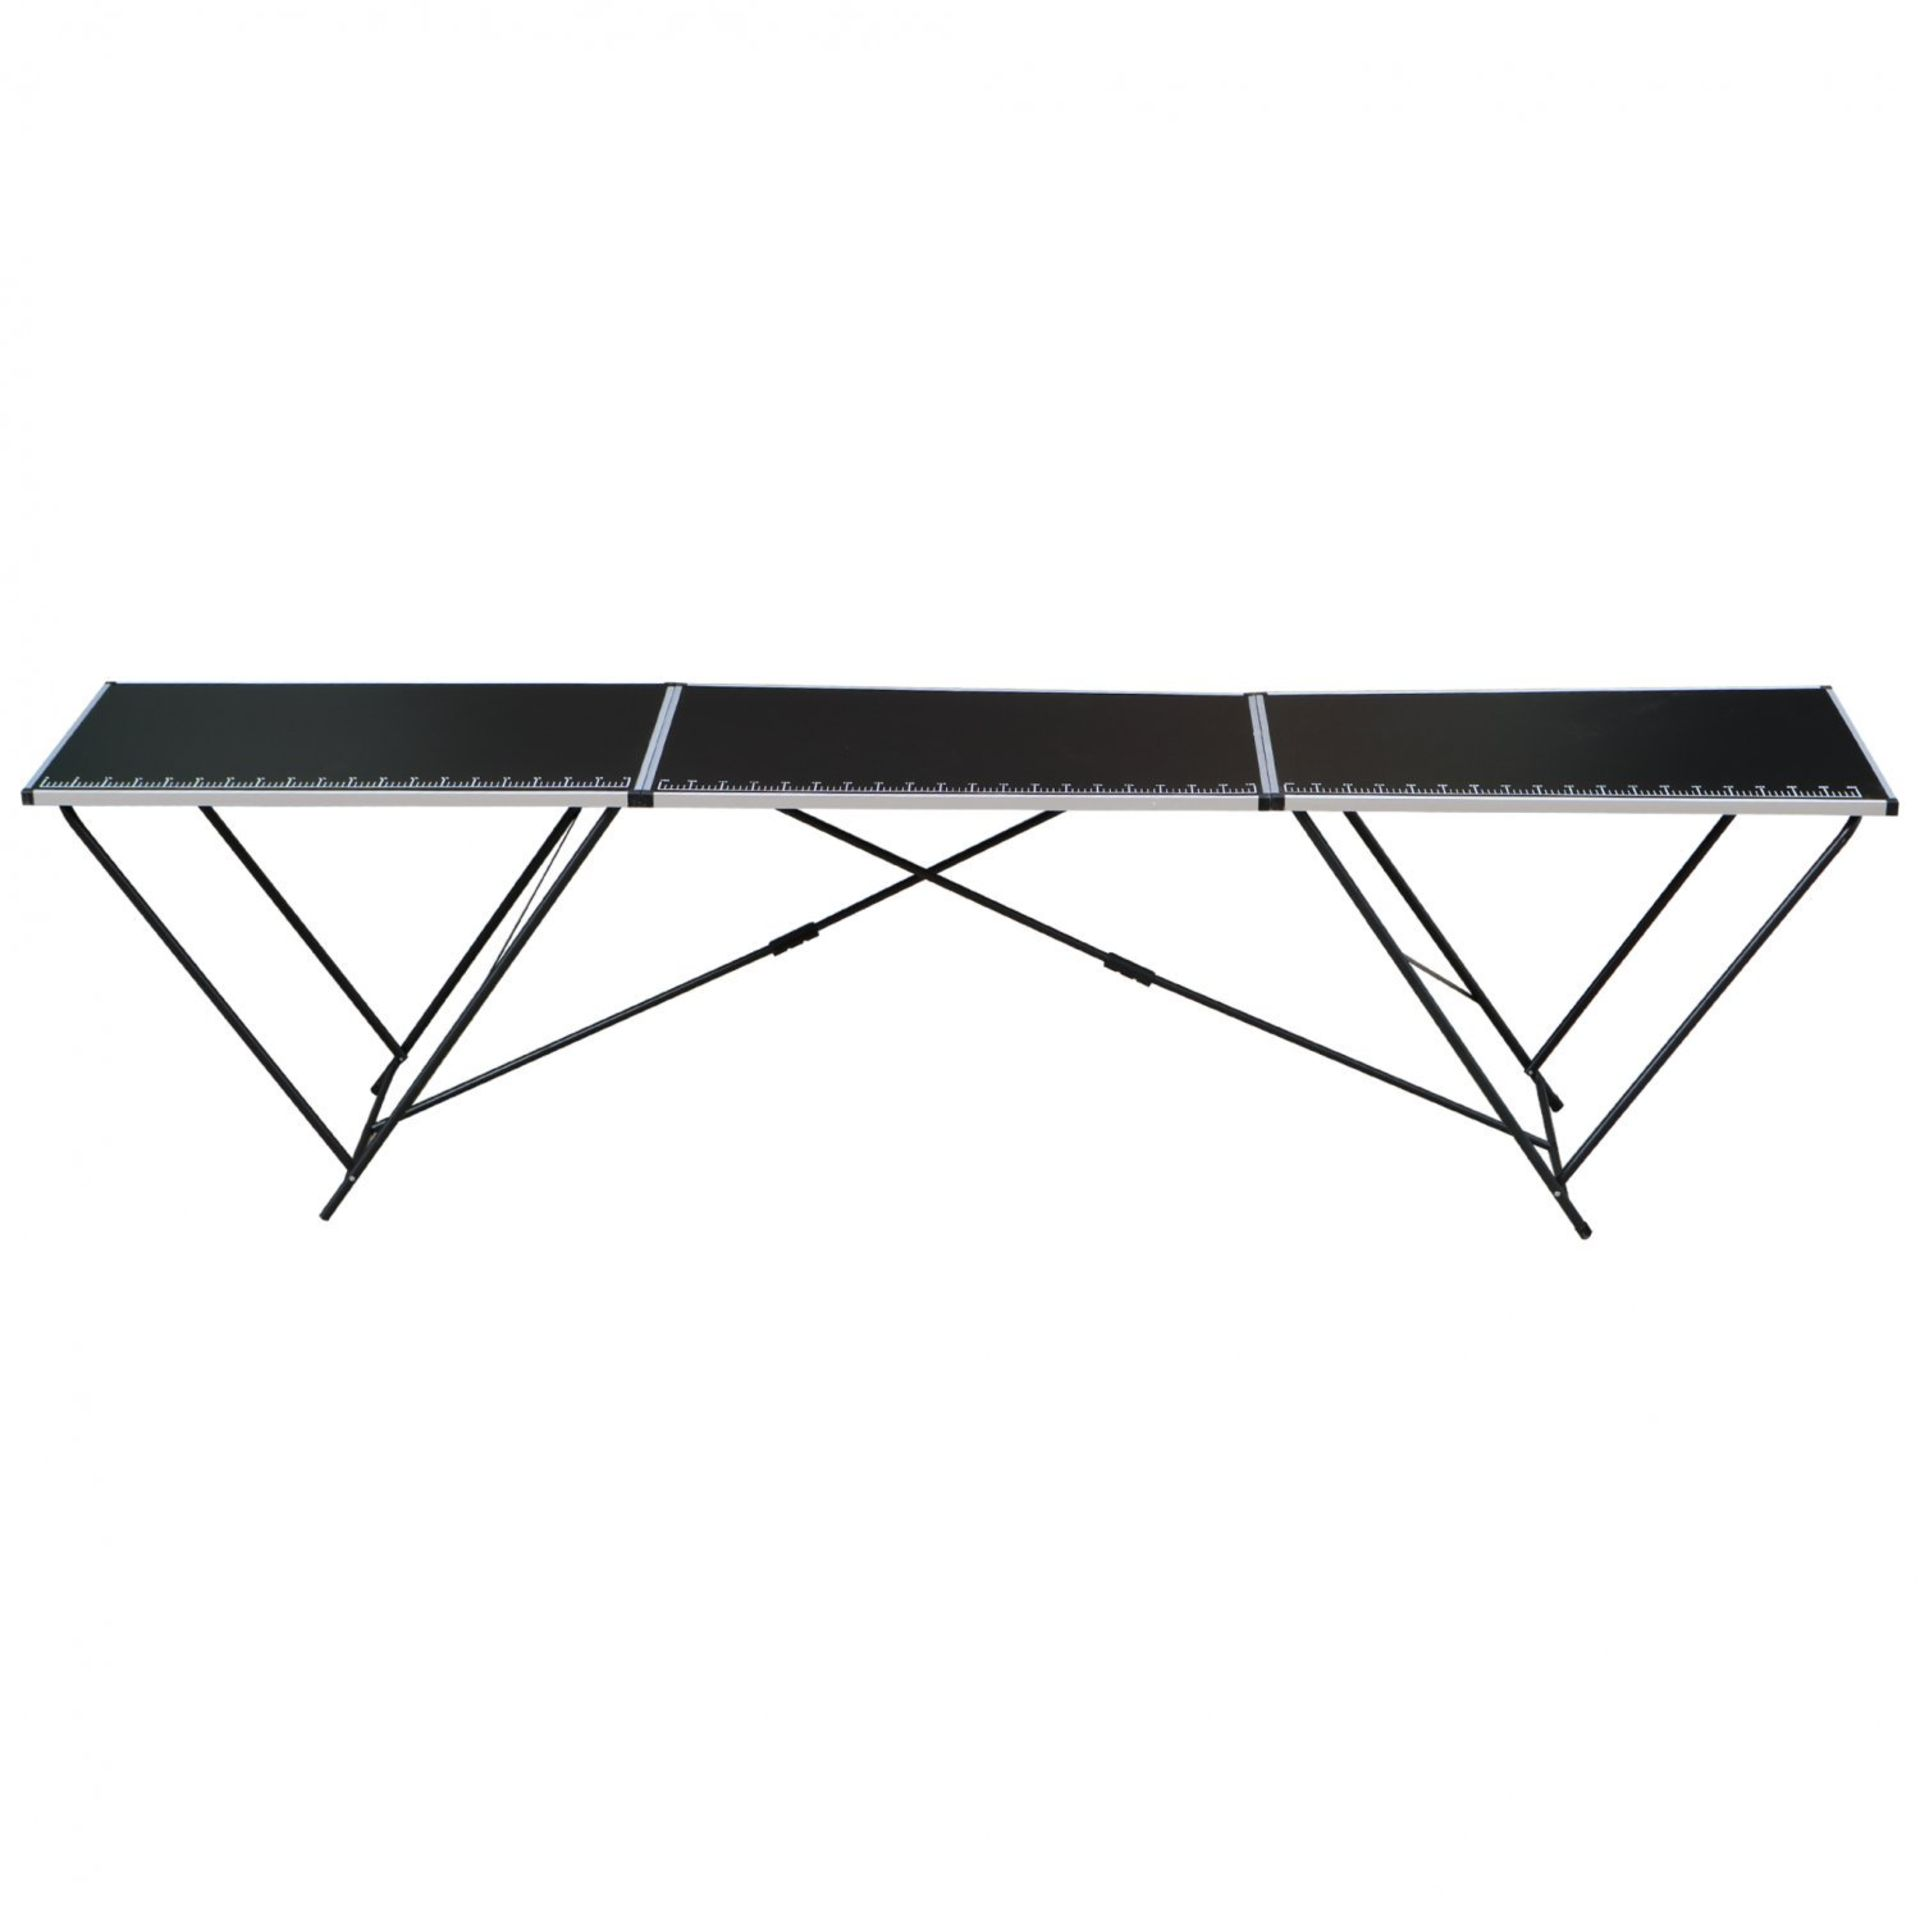 Lot 207 - (SK124) 3m Aluminium Folding Wallpaper Pasting Decorating Table The pasting table is ideal f...